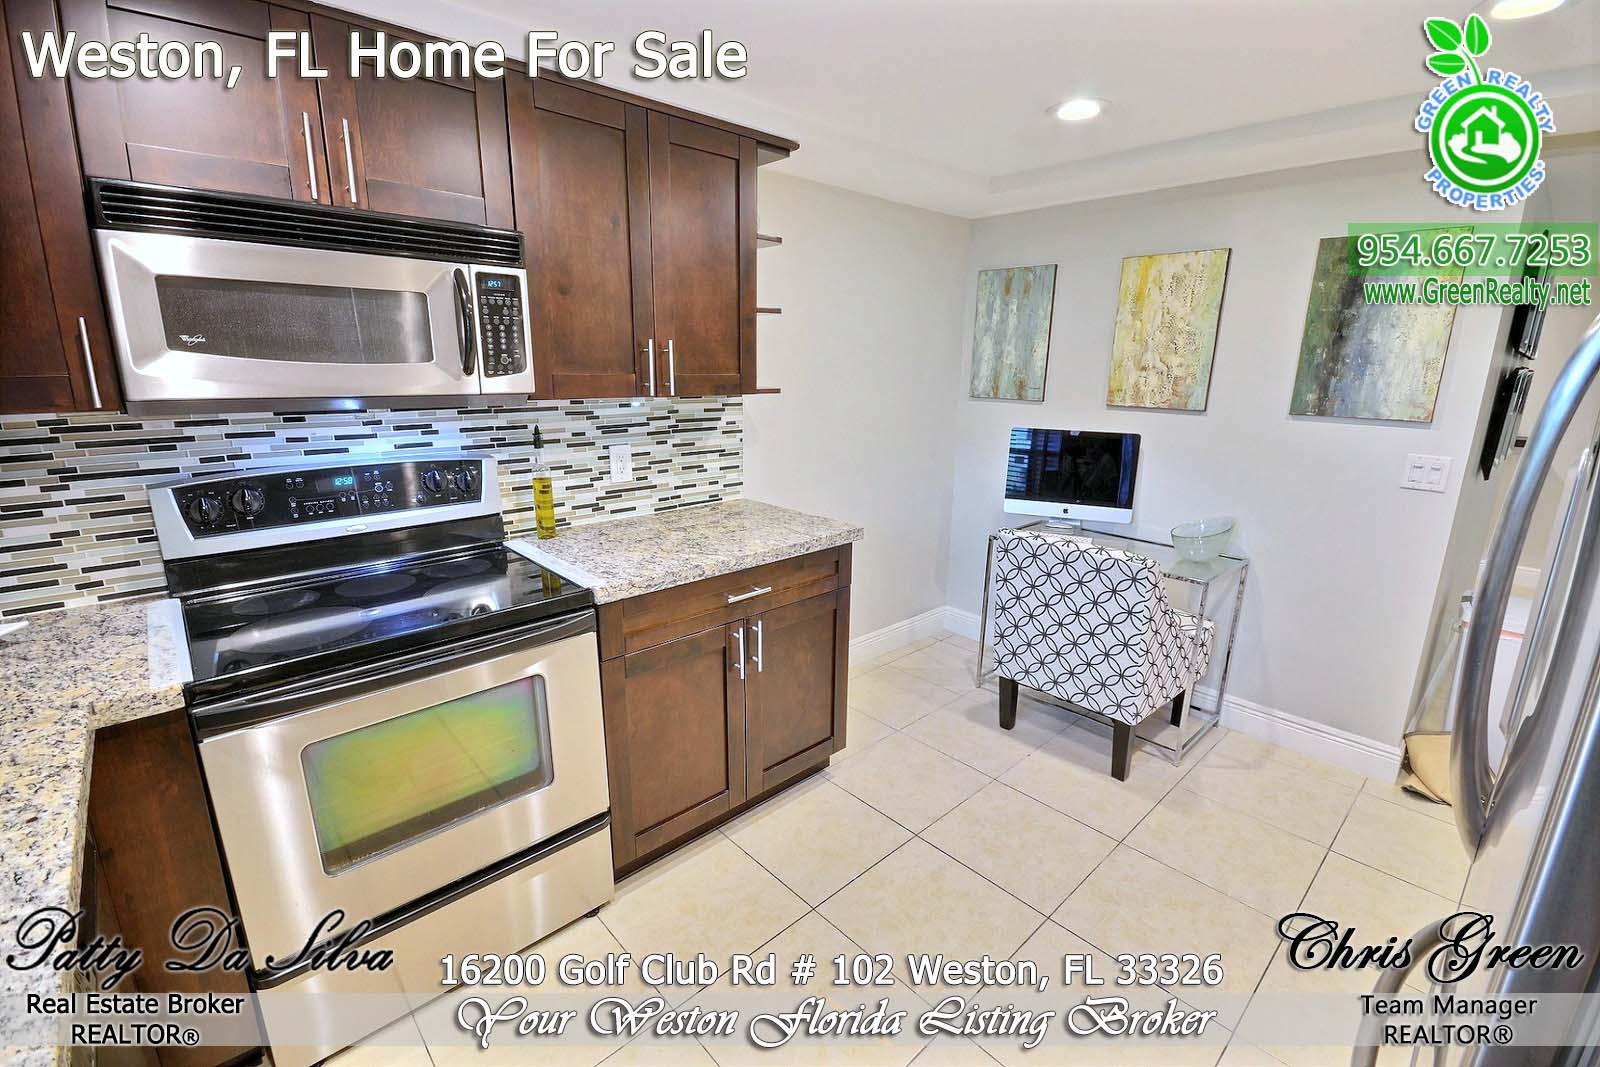 14 16200 Golf Club Rd, Unit 102, Weston FL 33326 (15)